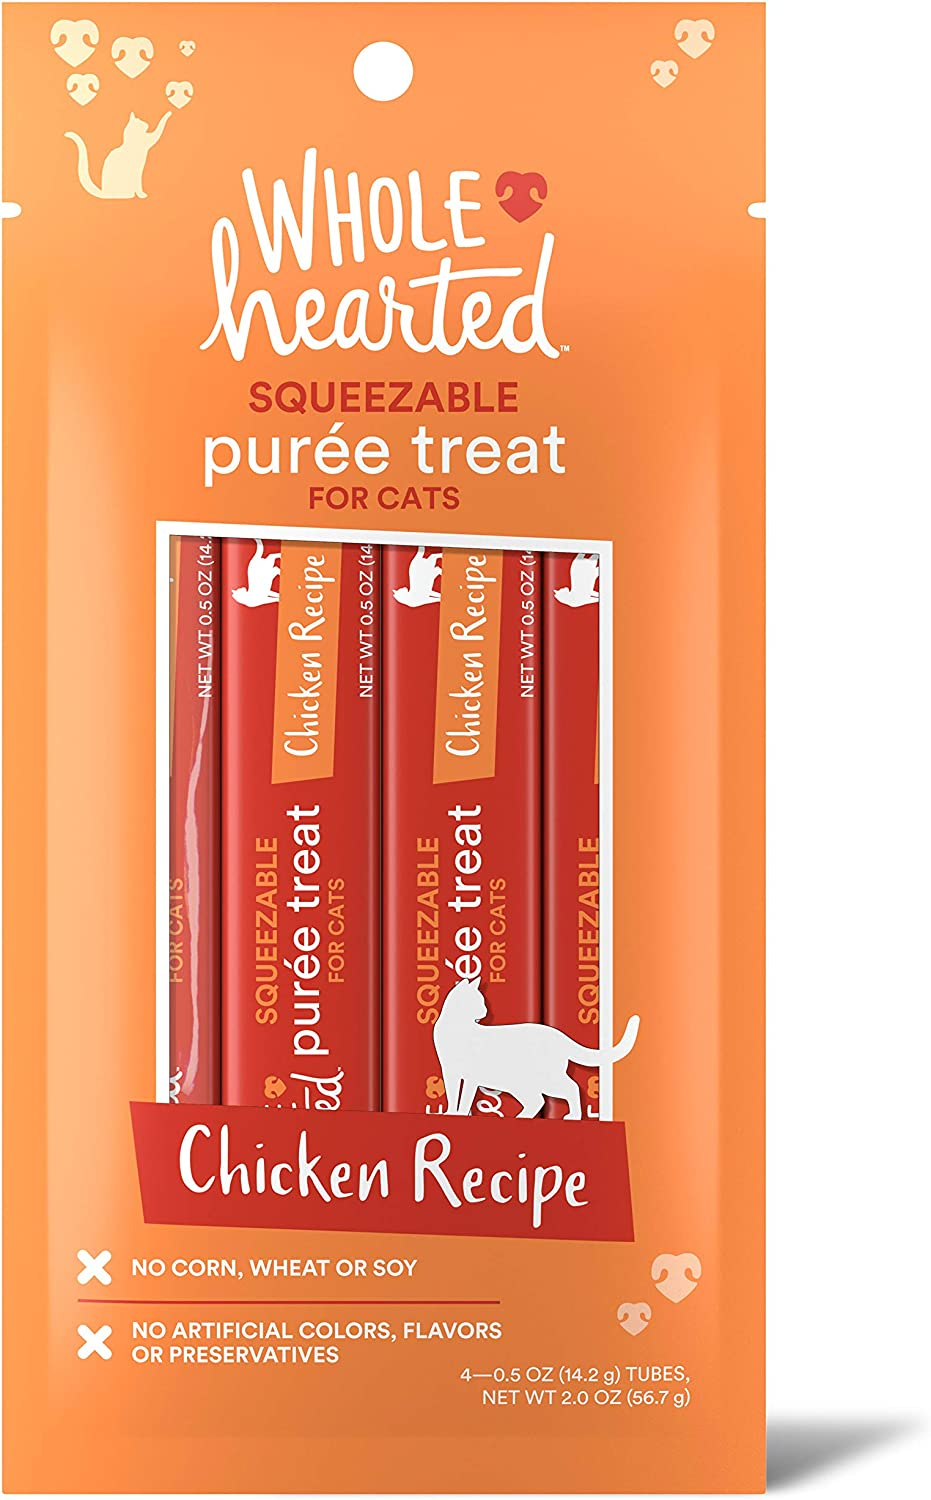 WholeHearted Chicken Recipe Puree Squeezable Cat Treats, 0.5 oz., Count of 4 by PETCO